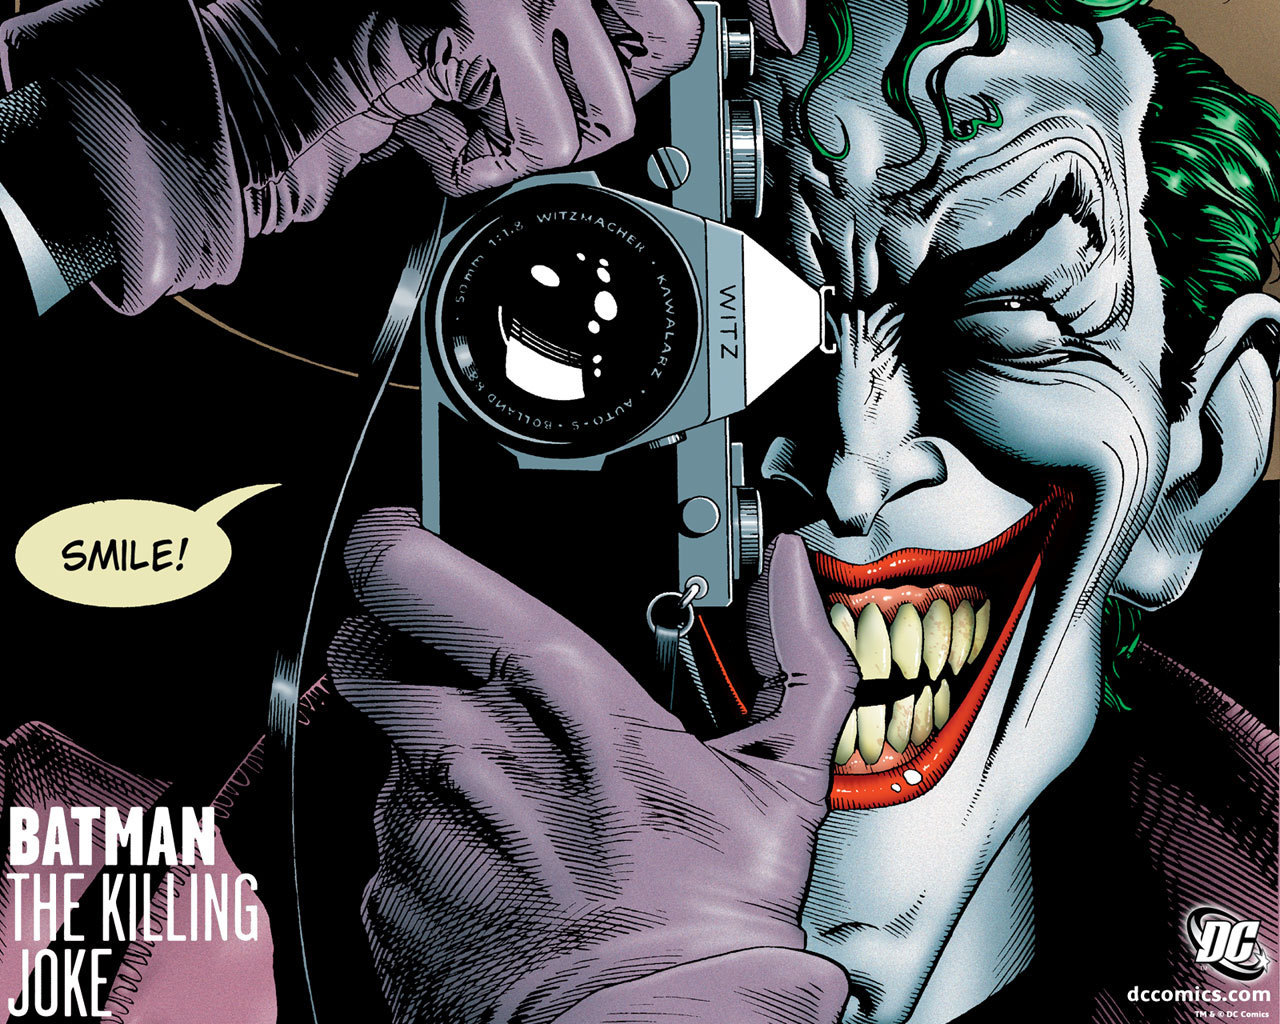 Batman Villains Joker